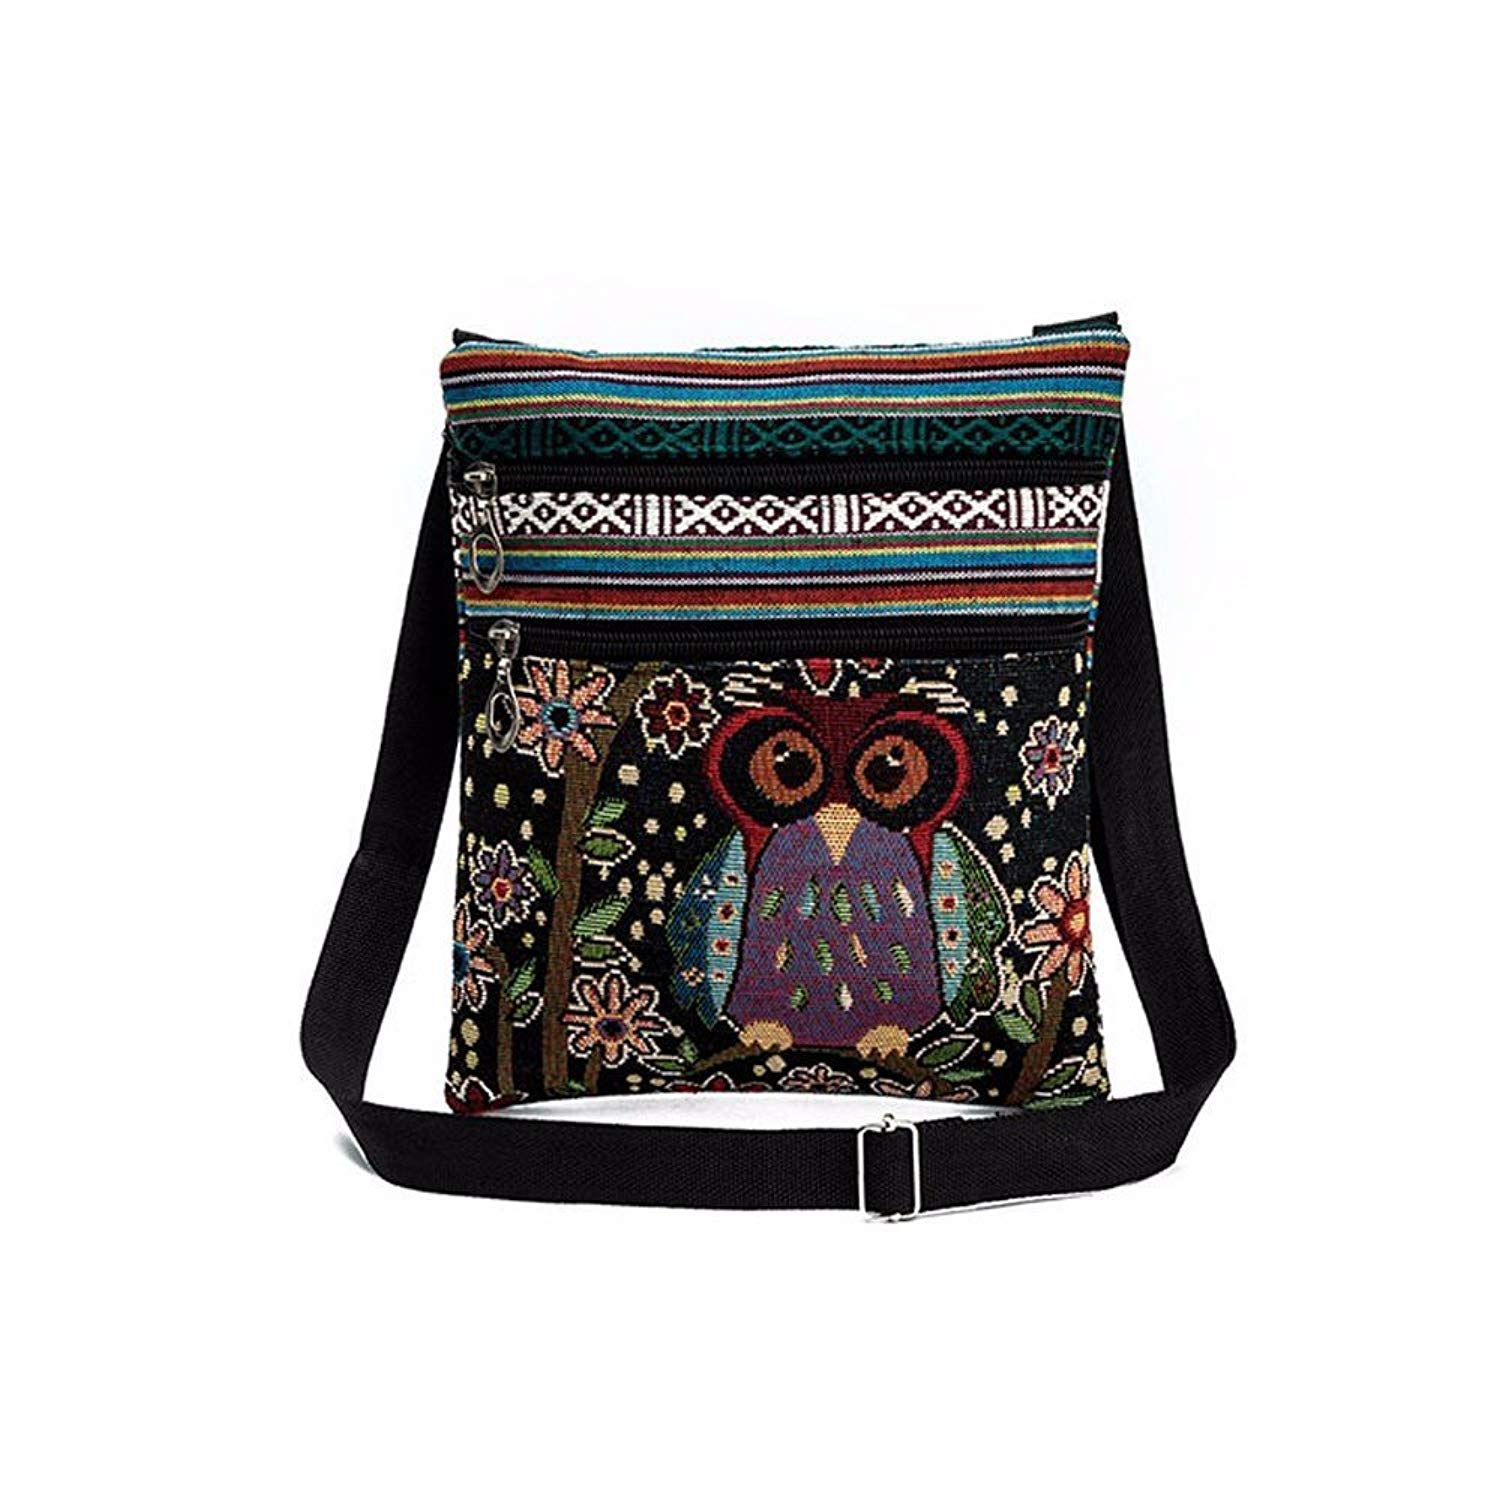 Liraly Women Bags,Clearance Sale! Embroidered Owl Tote Bags Women Shoulder Bag Handbags Postman Package